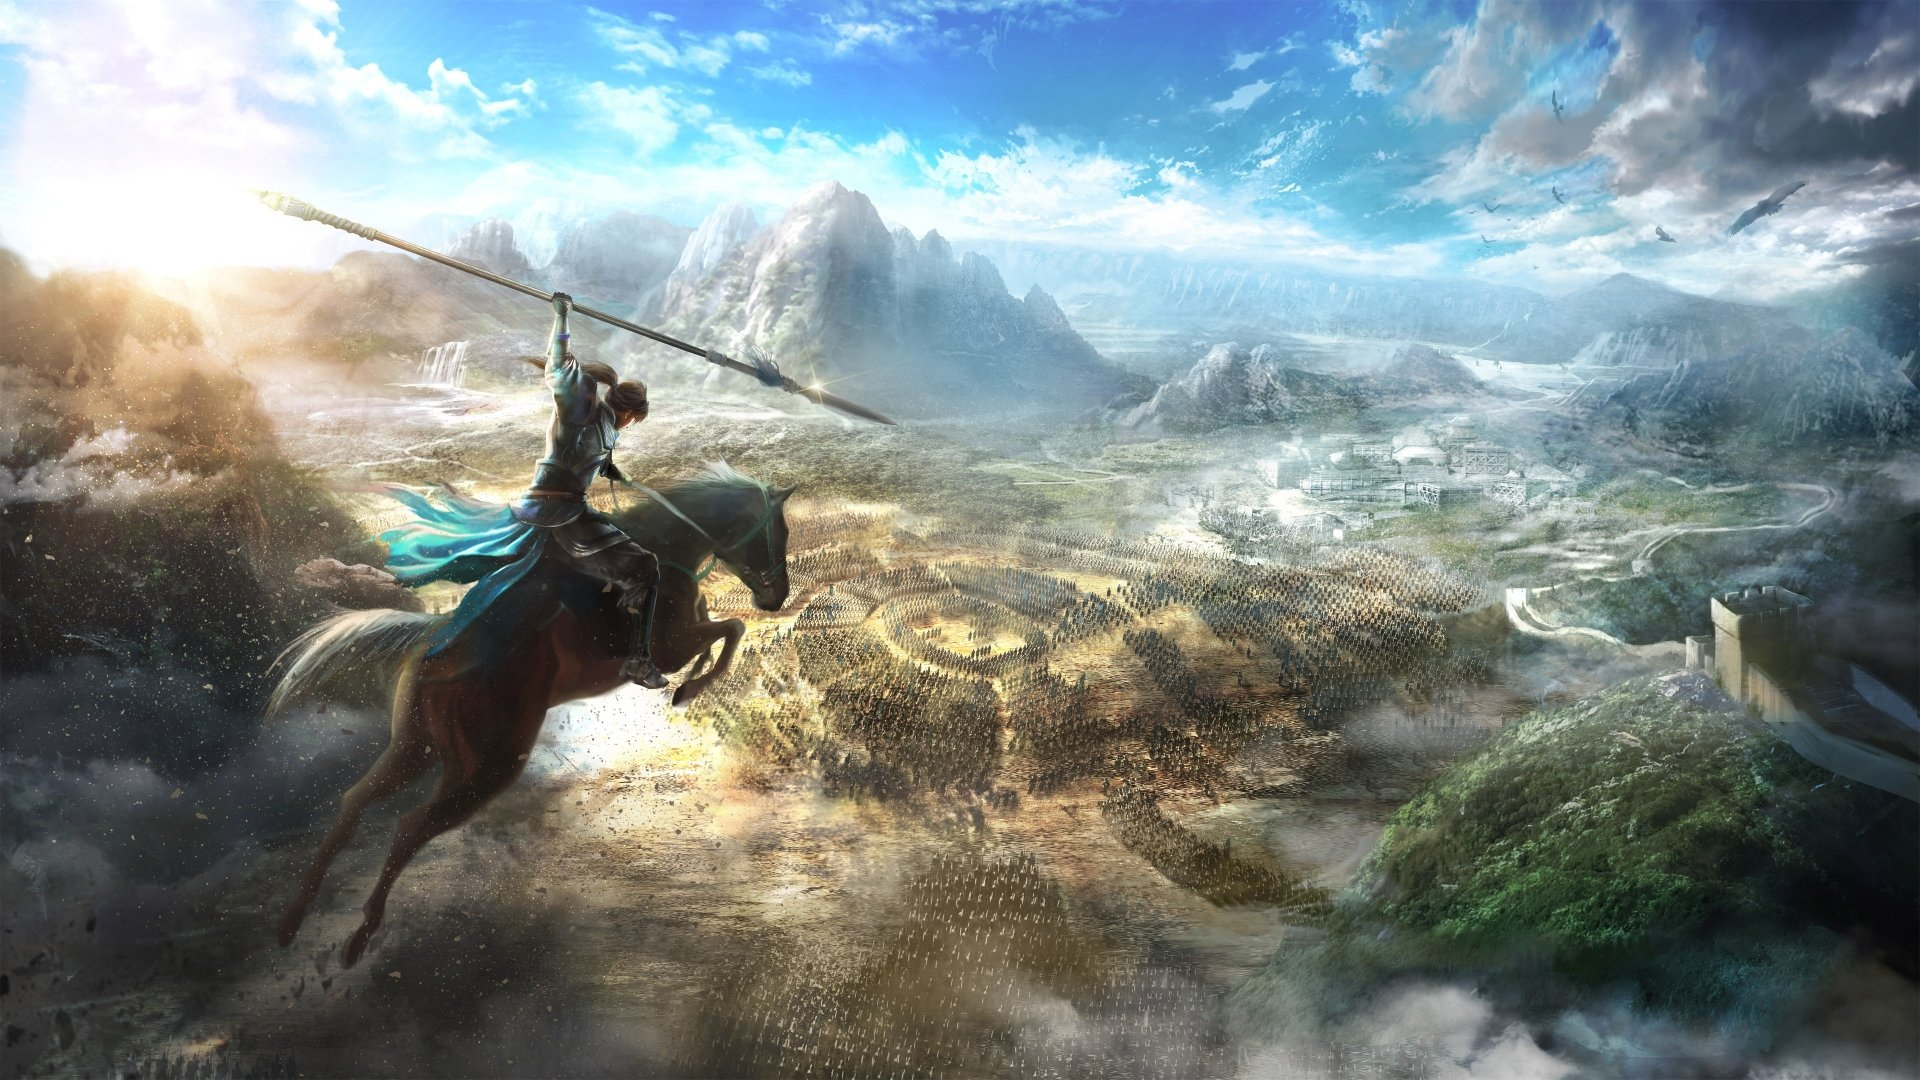 Video Game - Dynasty Warriors 9  Battle Warrior Spear Horse Landscape Army Wallpaper